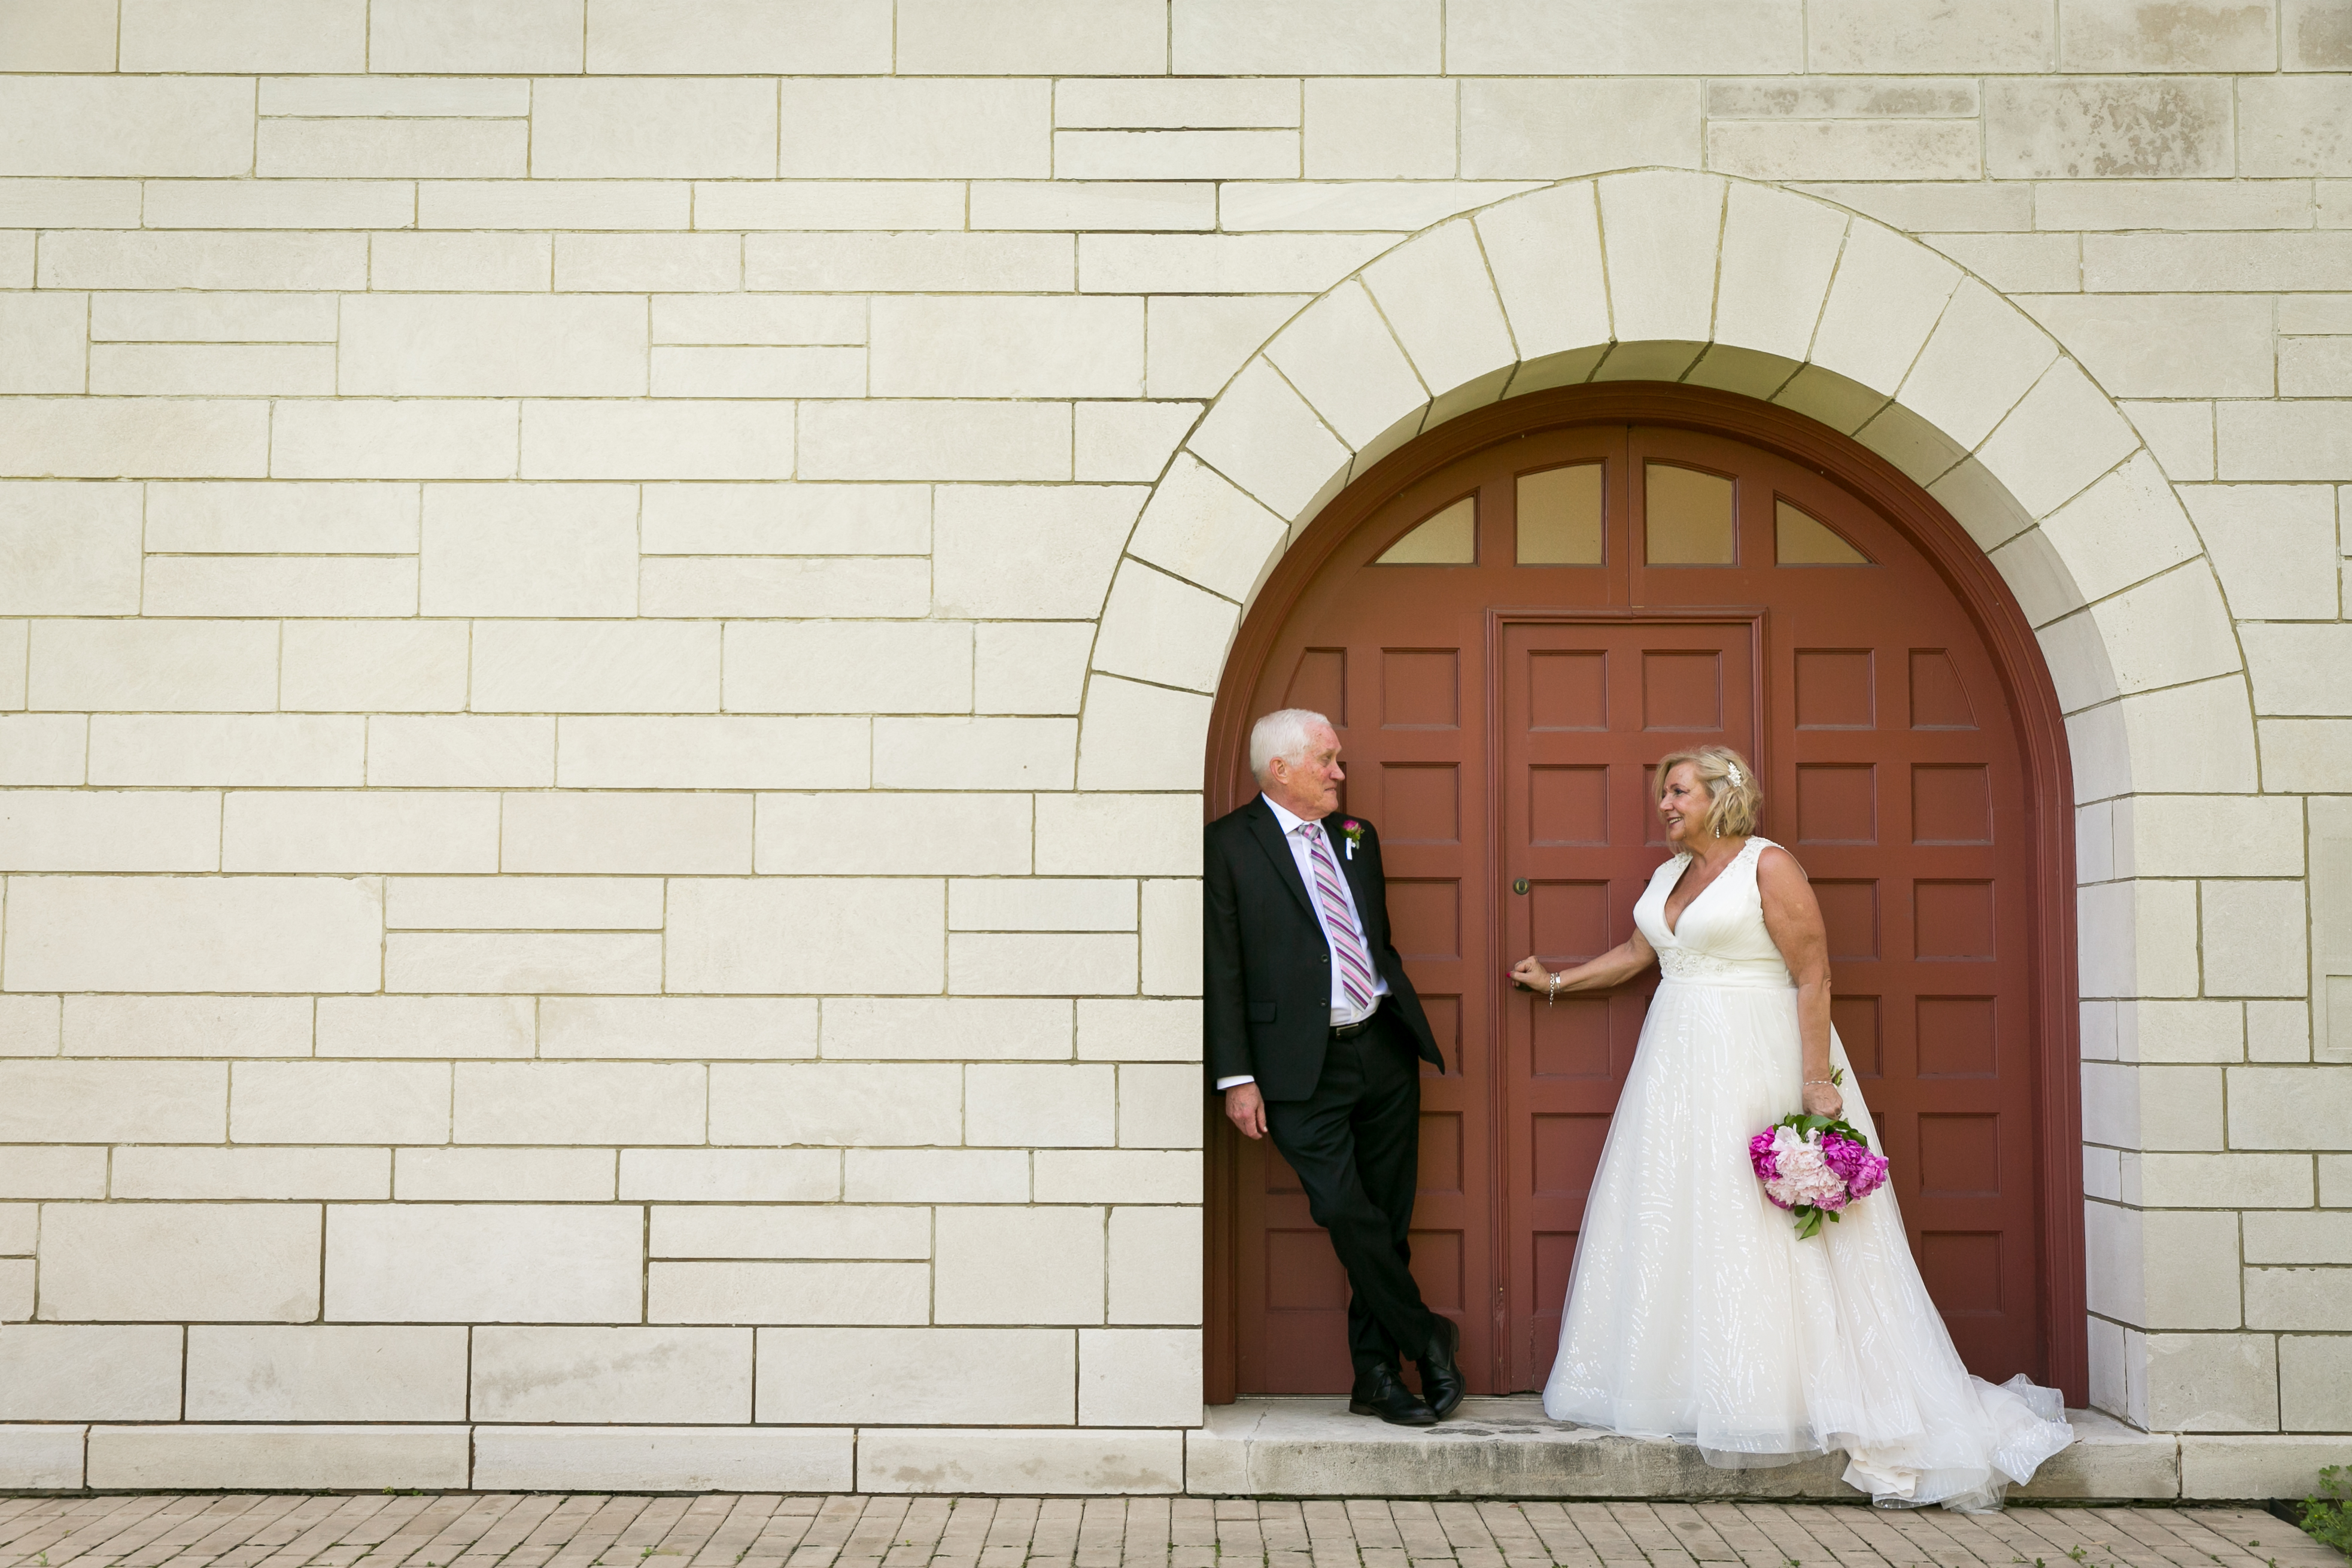 Mature Bride and groom